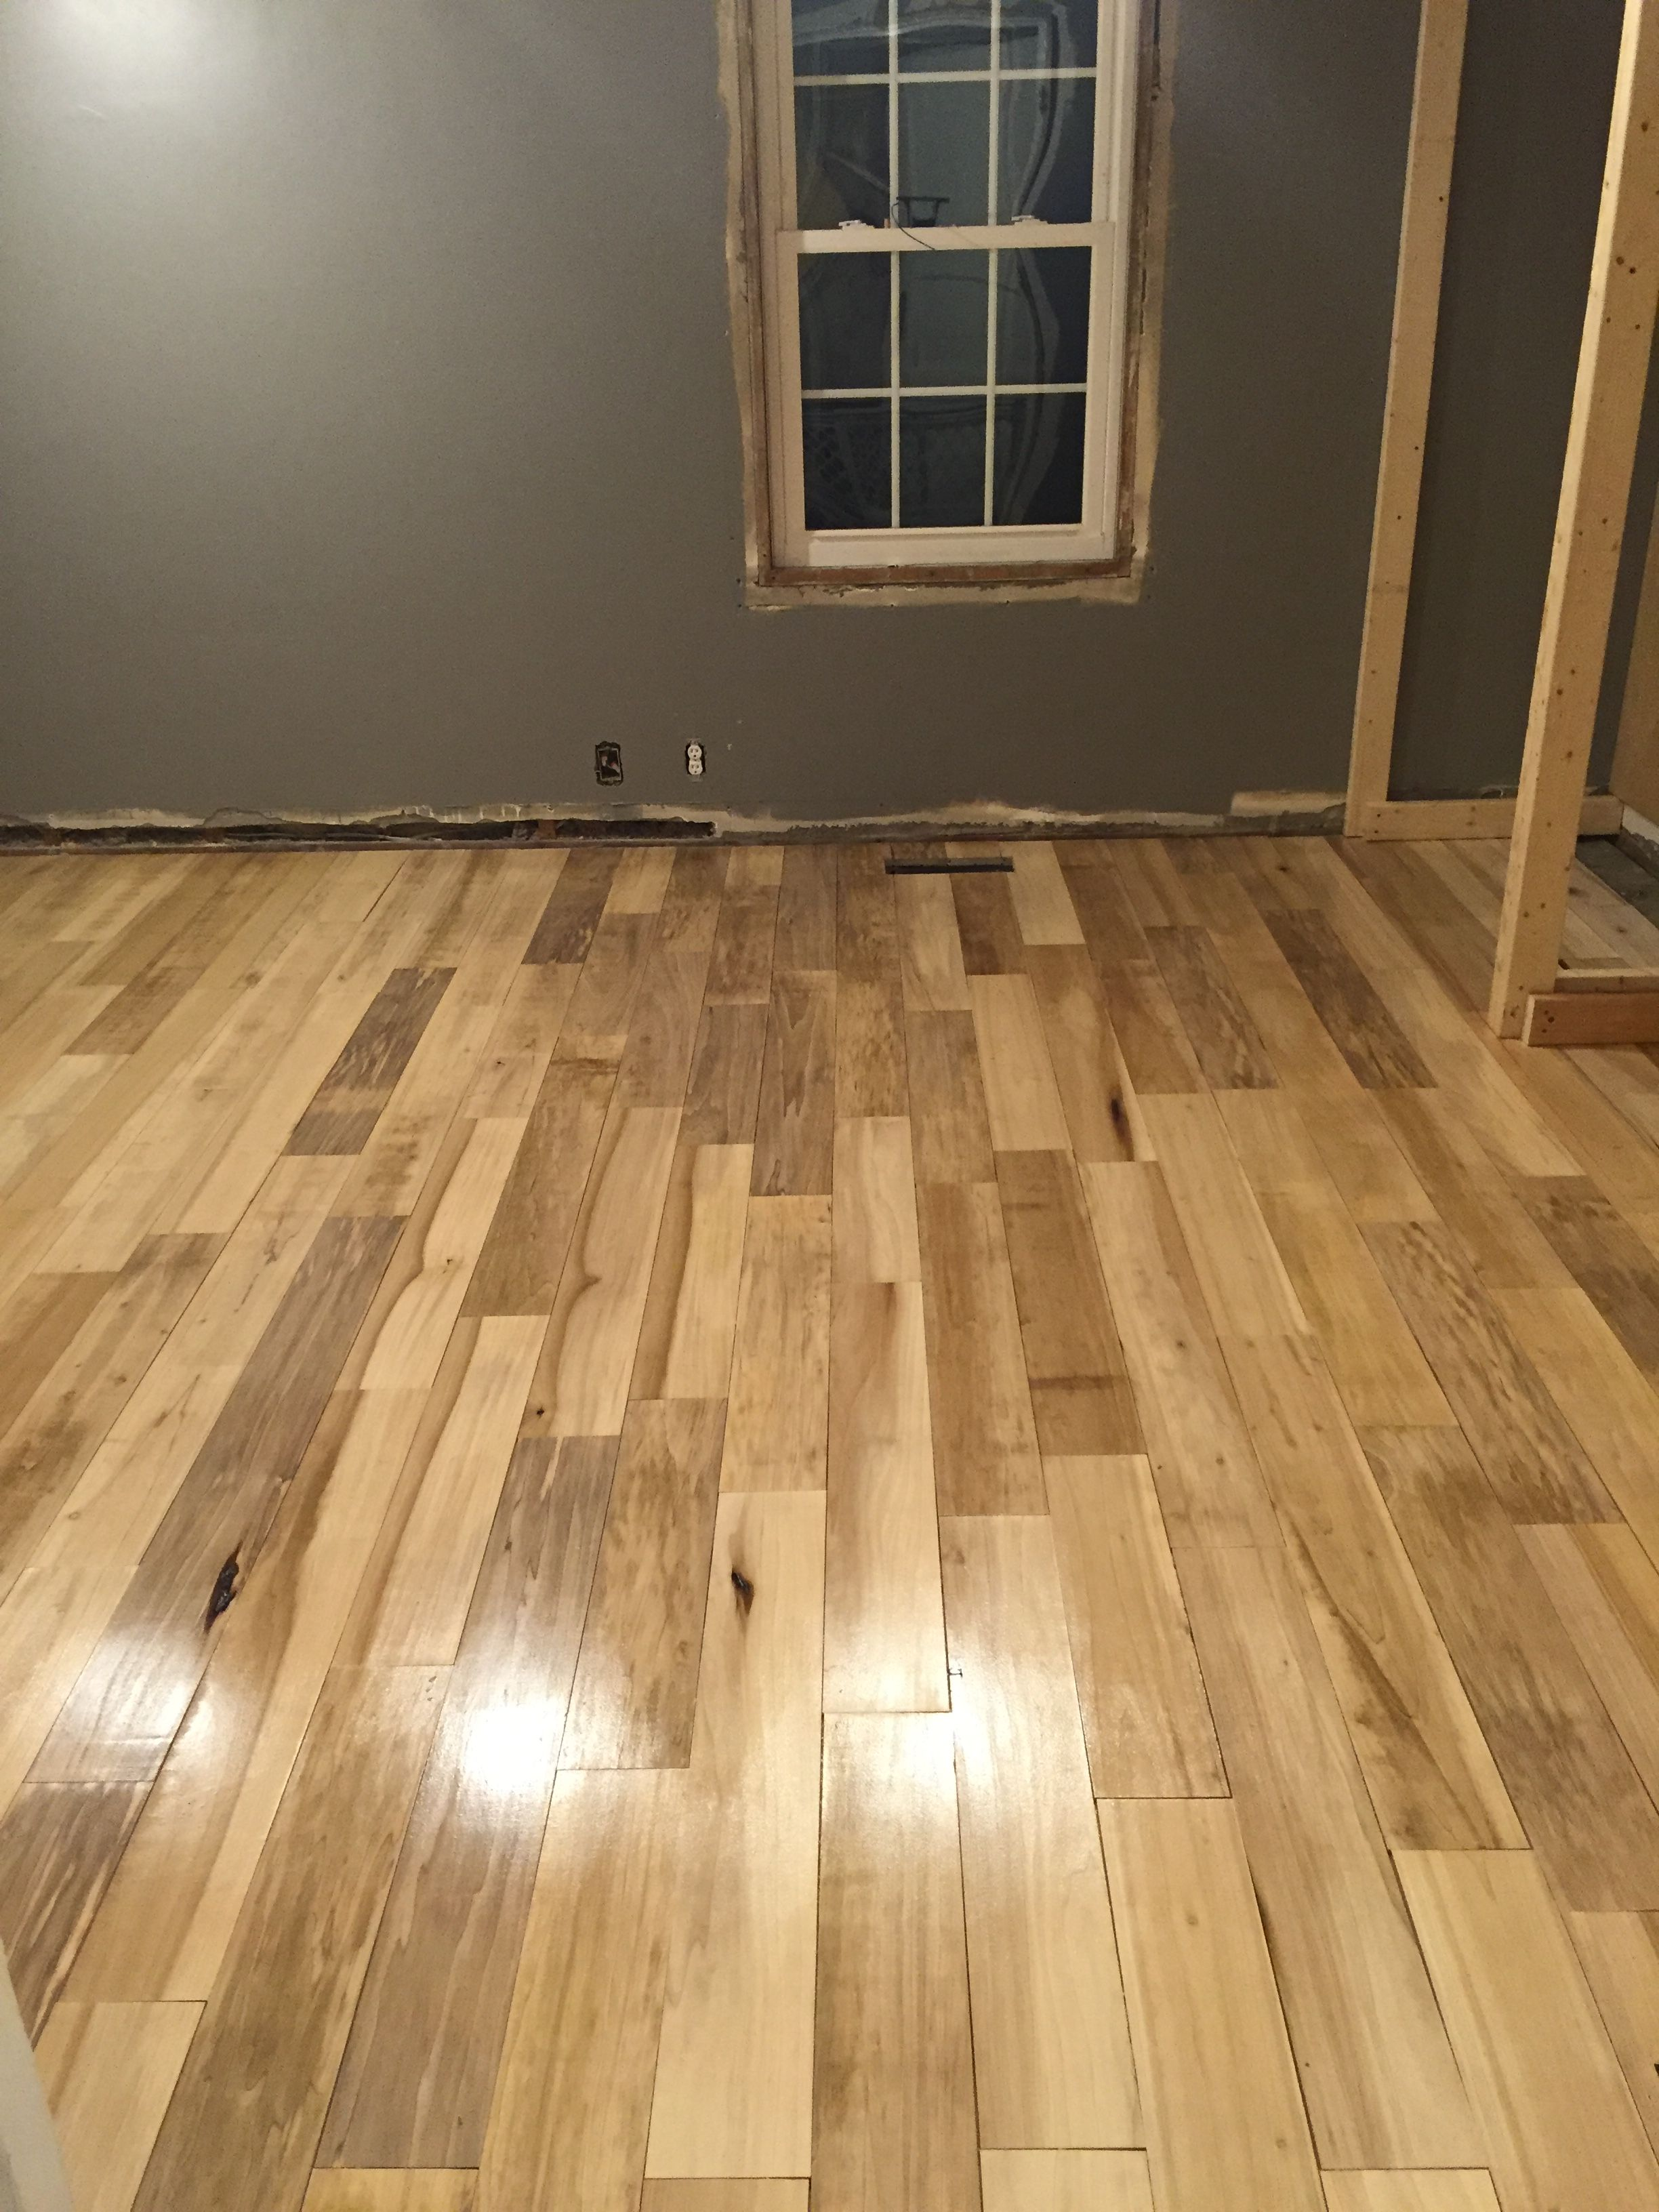 Poplar Floor We Put Down In Our Master Bedroom Flooring Cottage Living Next At Home